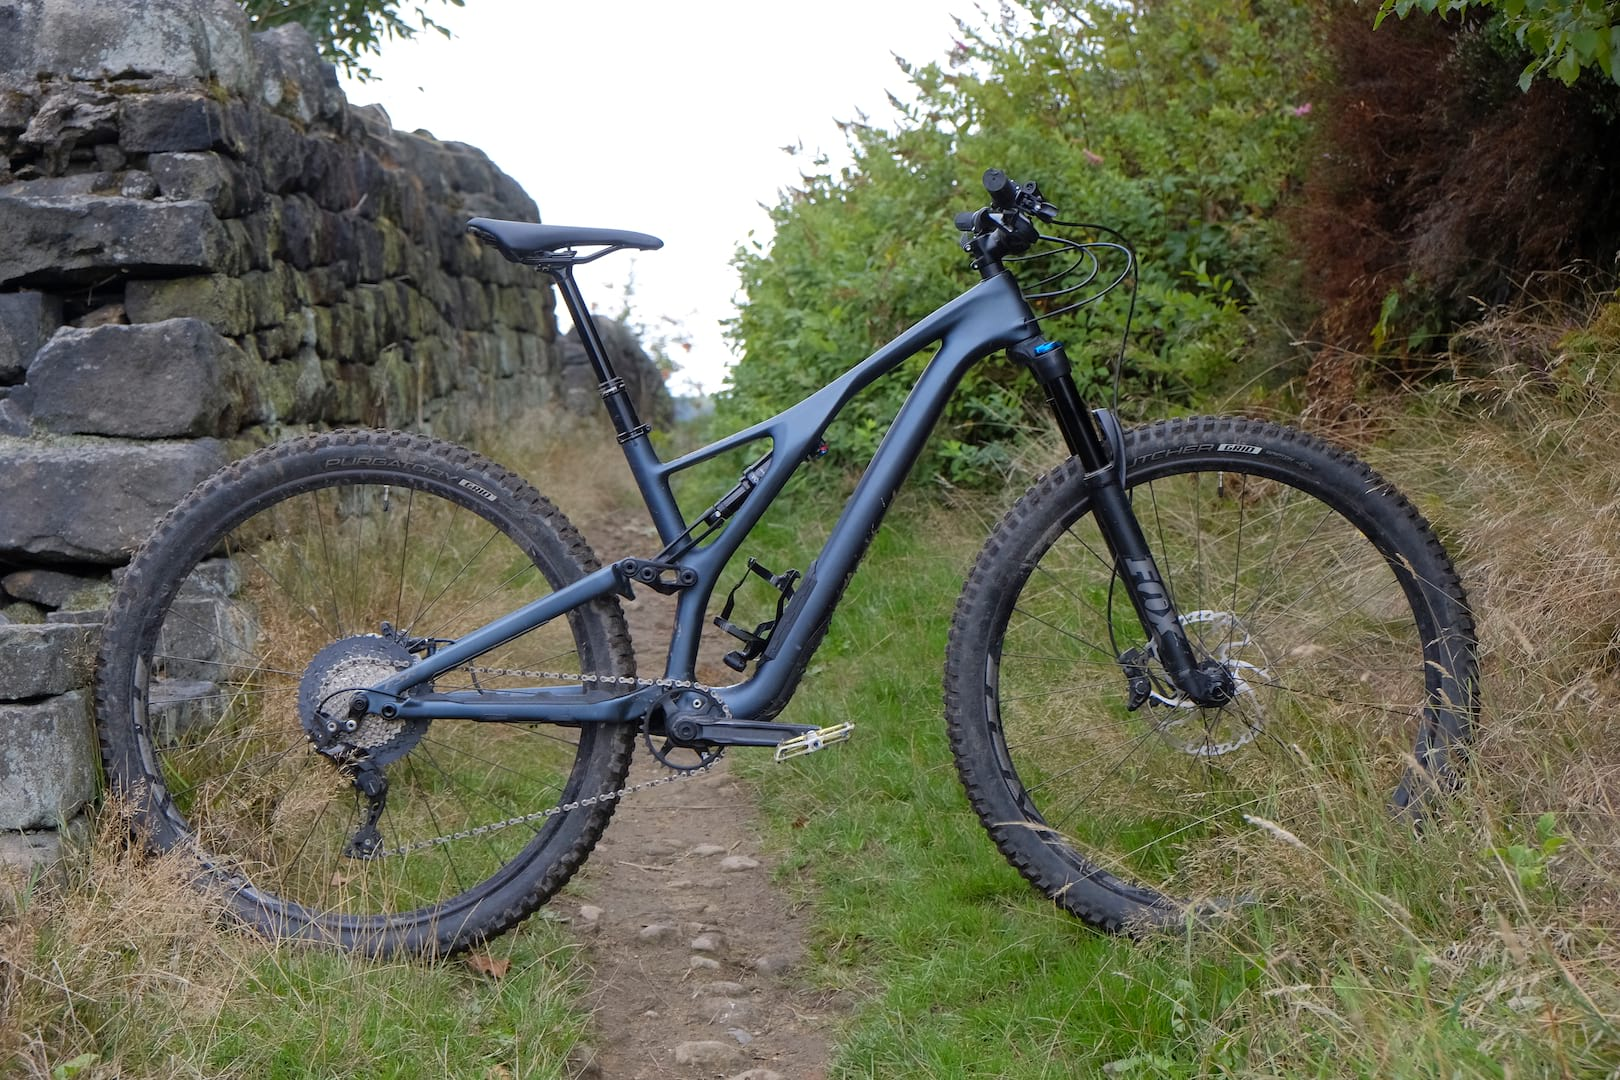 Review: The Specialized Stumpjumper ST Comp Carbon 29 may be shorter